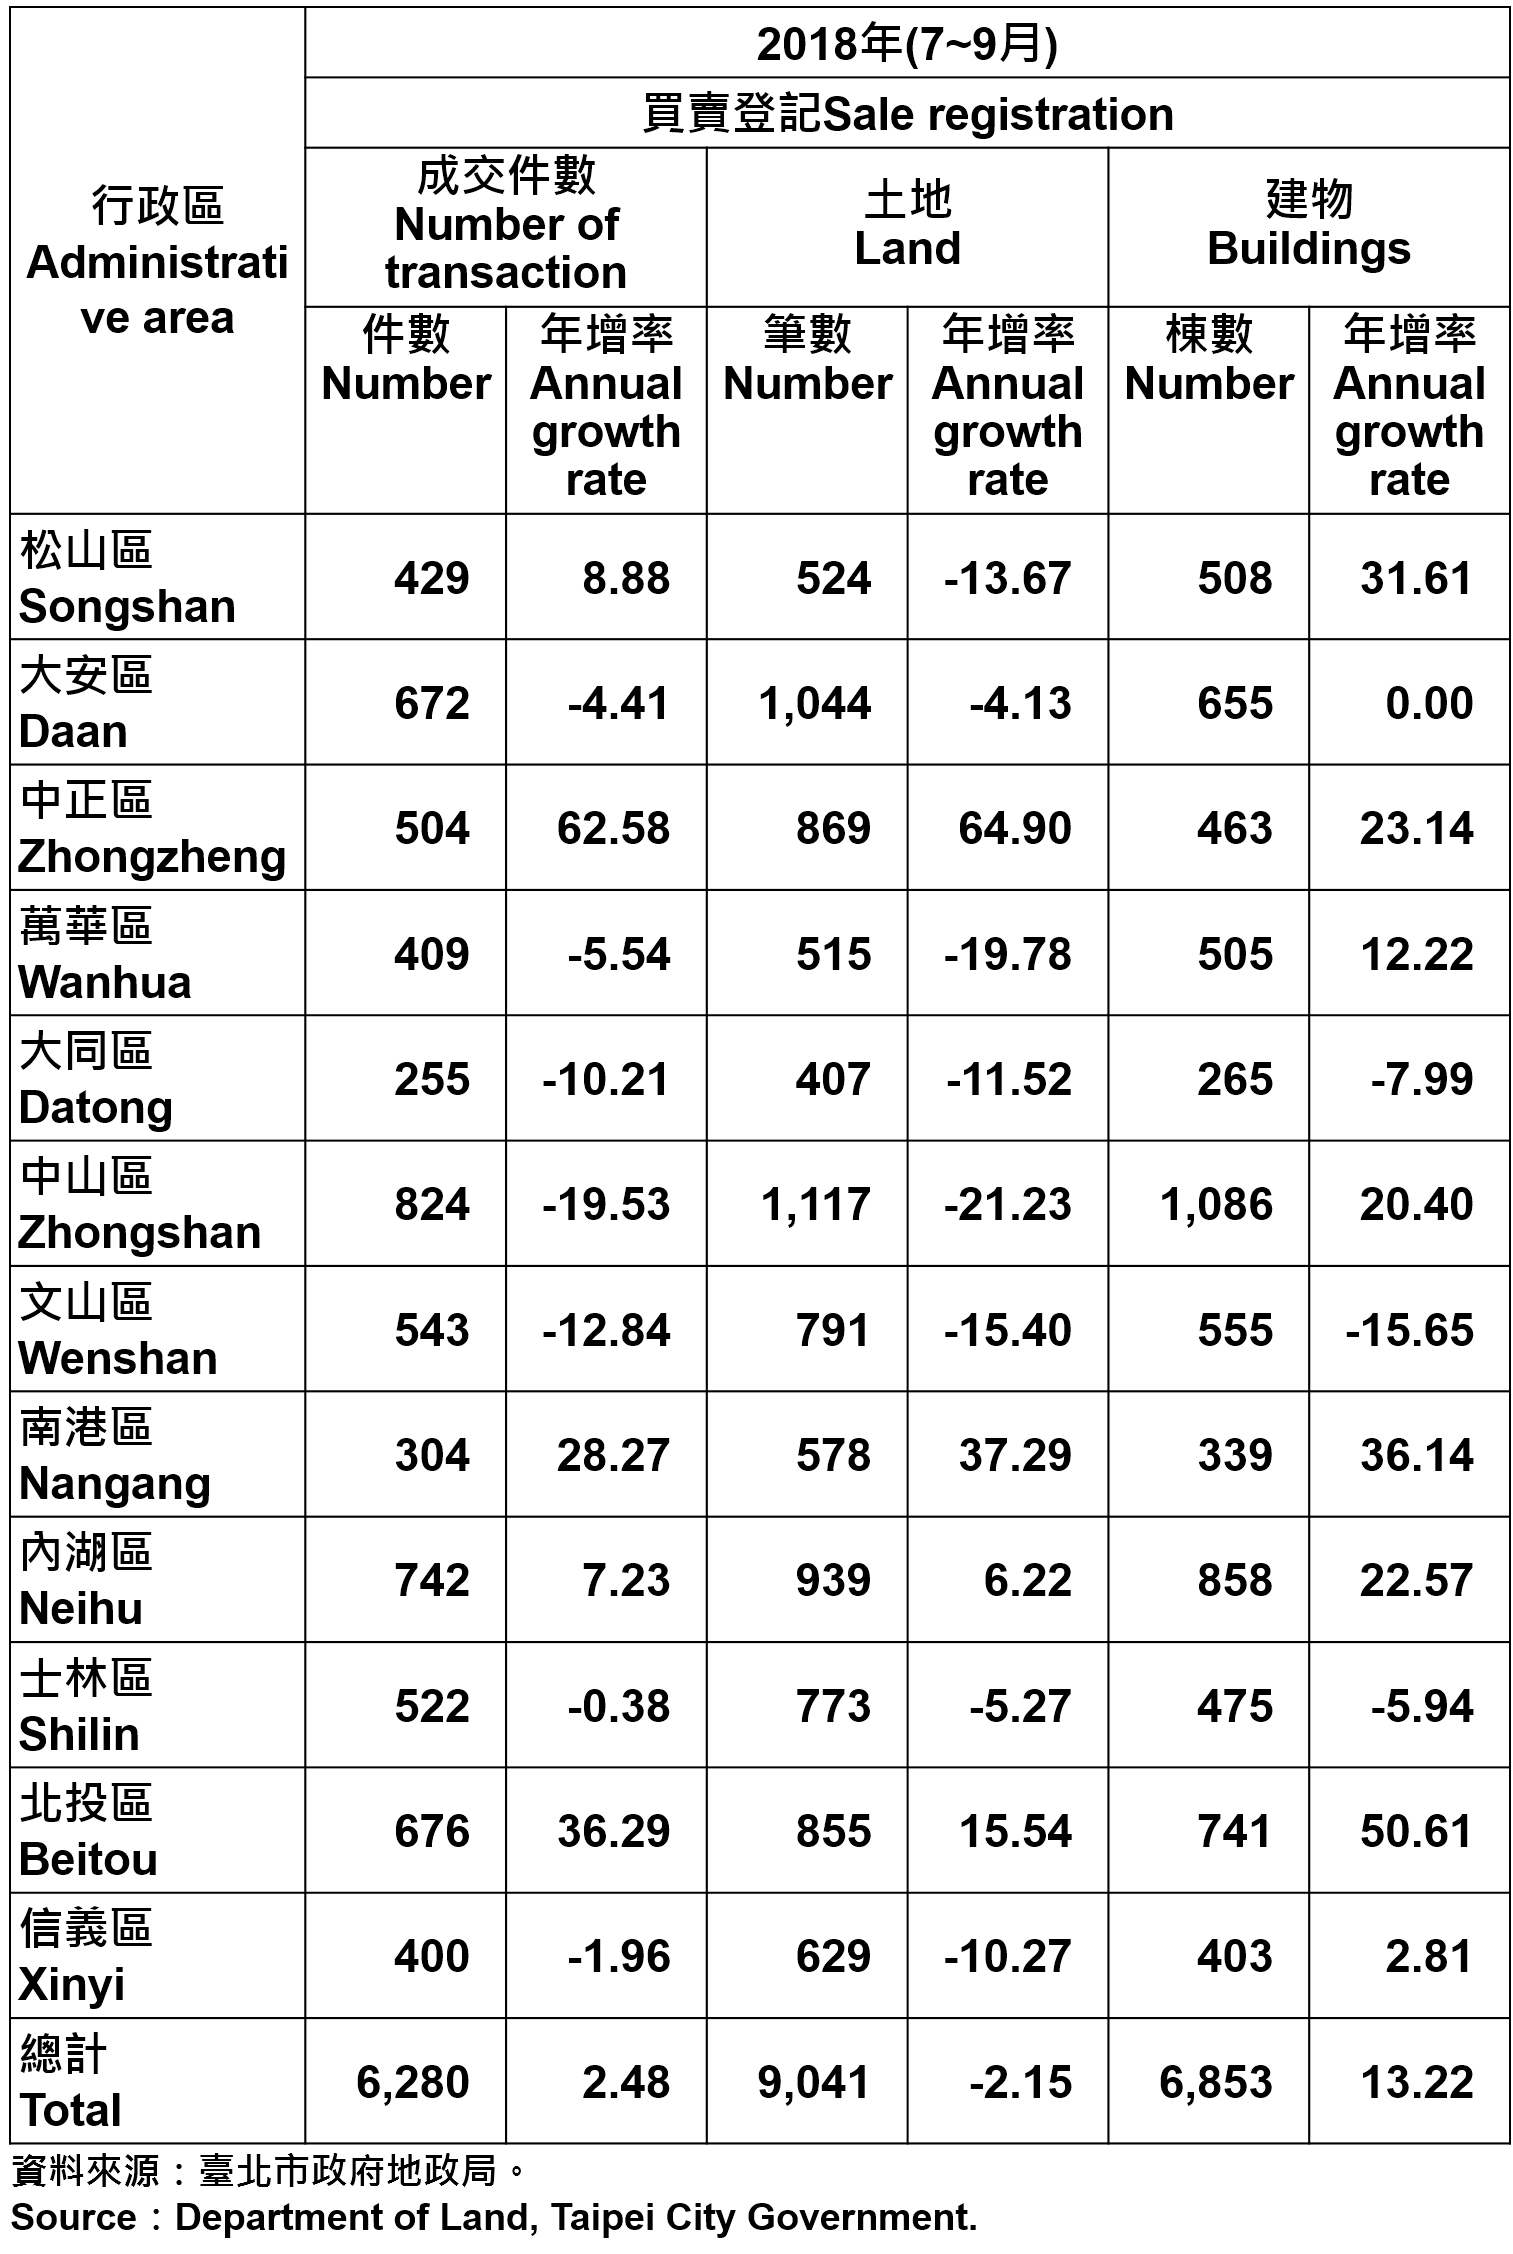 不動產買賣登記統計—依行政區分—2018Q3 Statistics for Trade in Real Estate Registration by Distinct—2018Q3